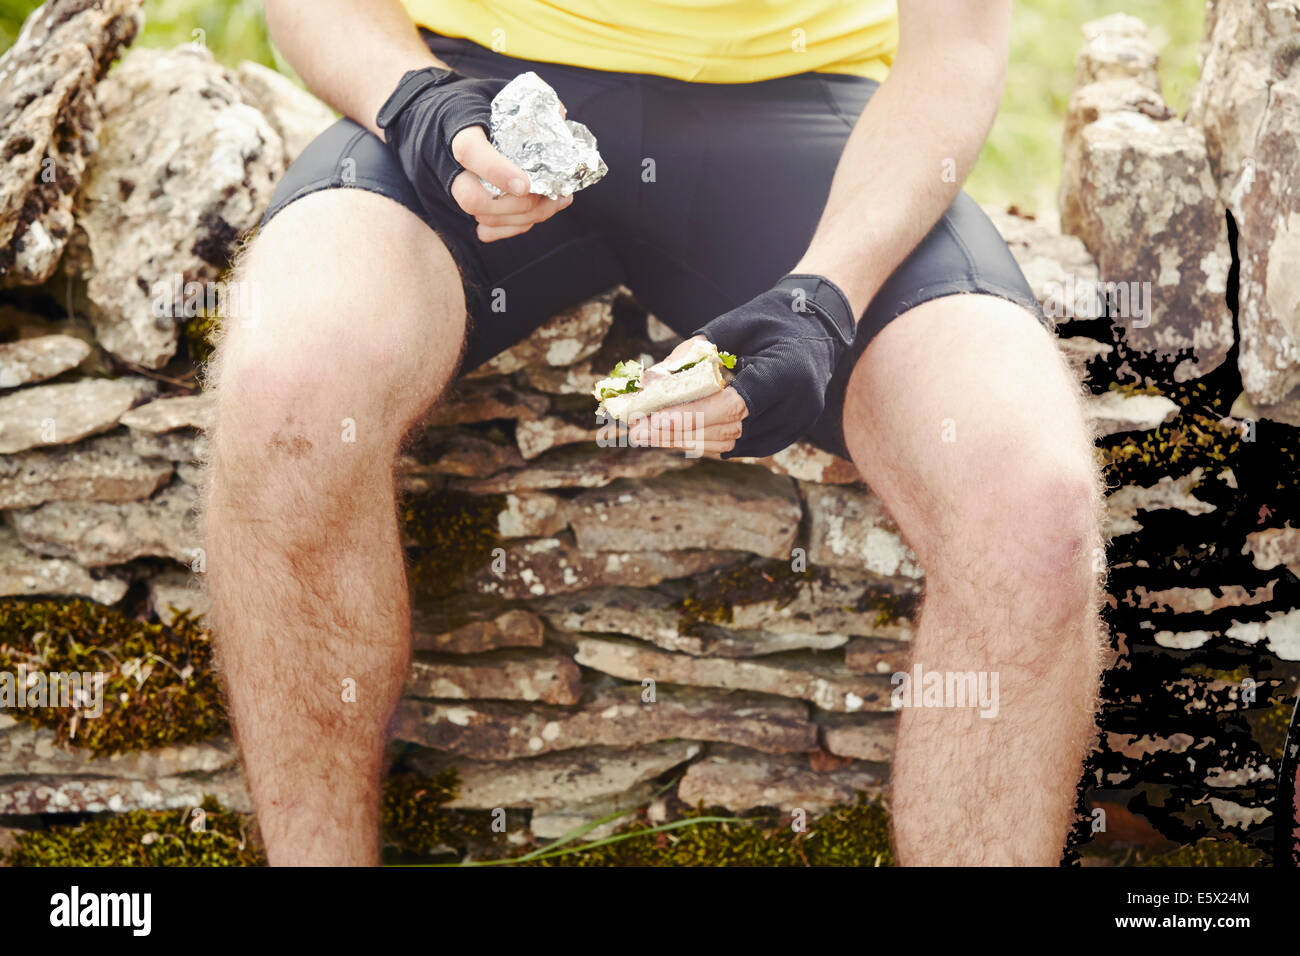 Cyclist sitting on stone wall, hold sandwich - Stock Image